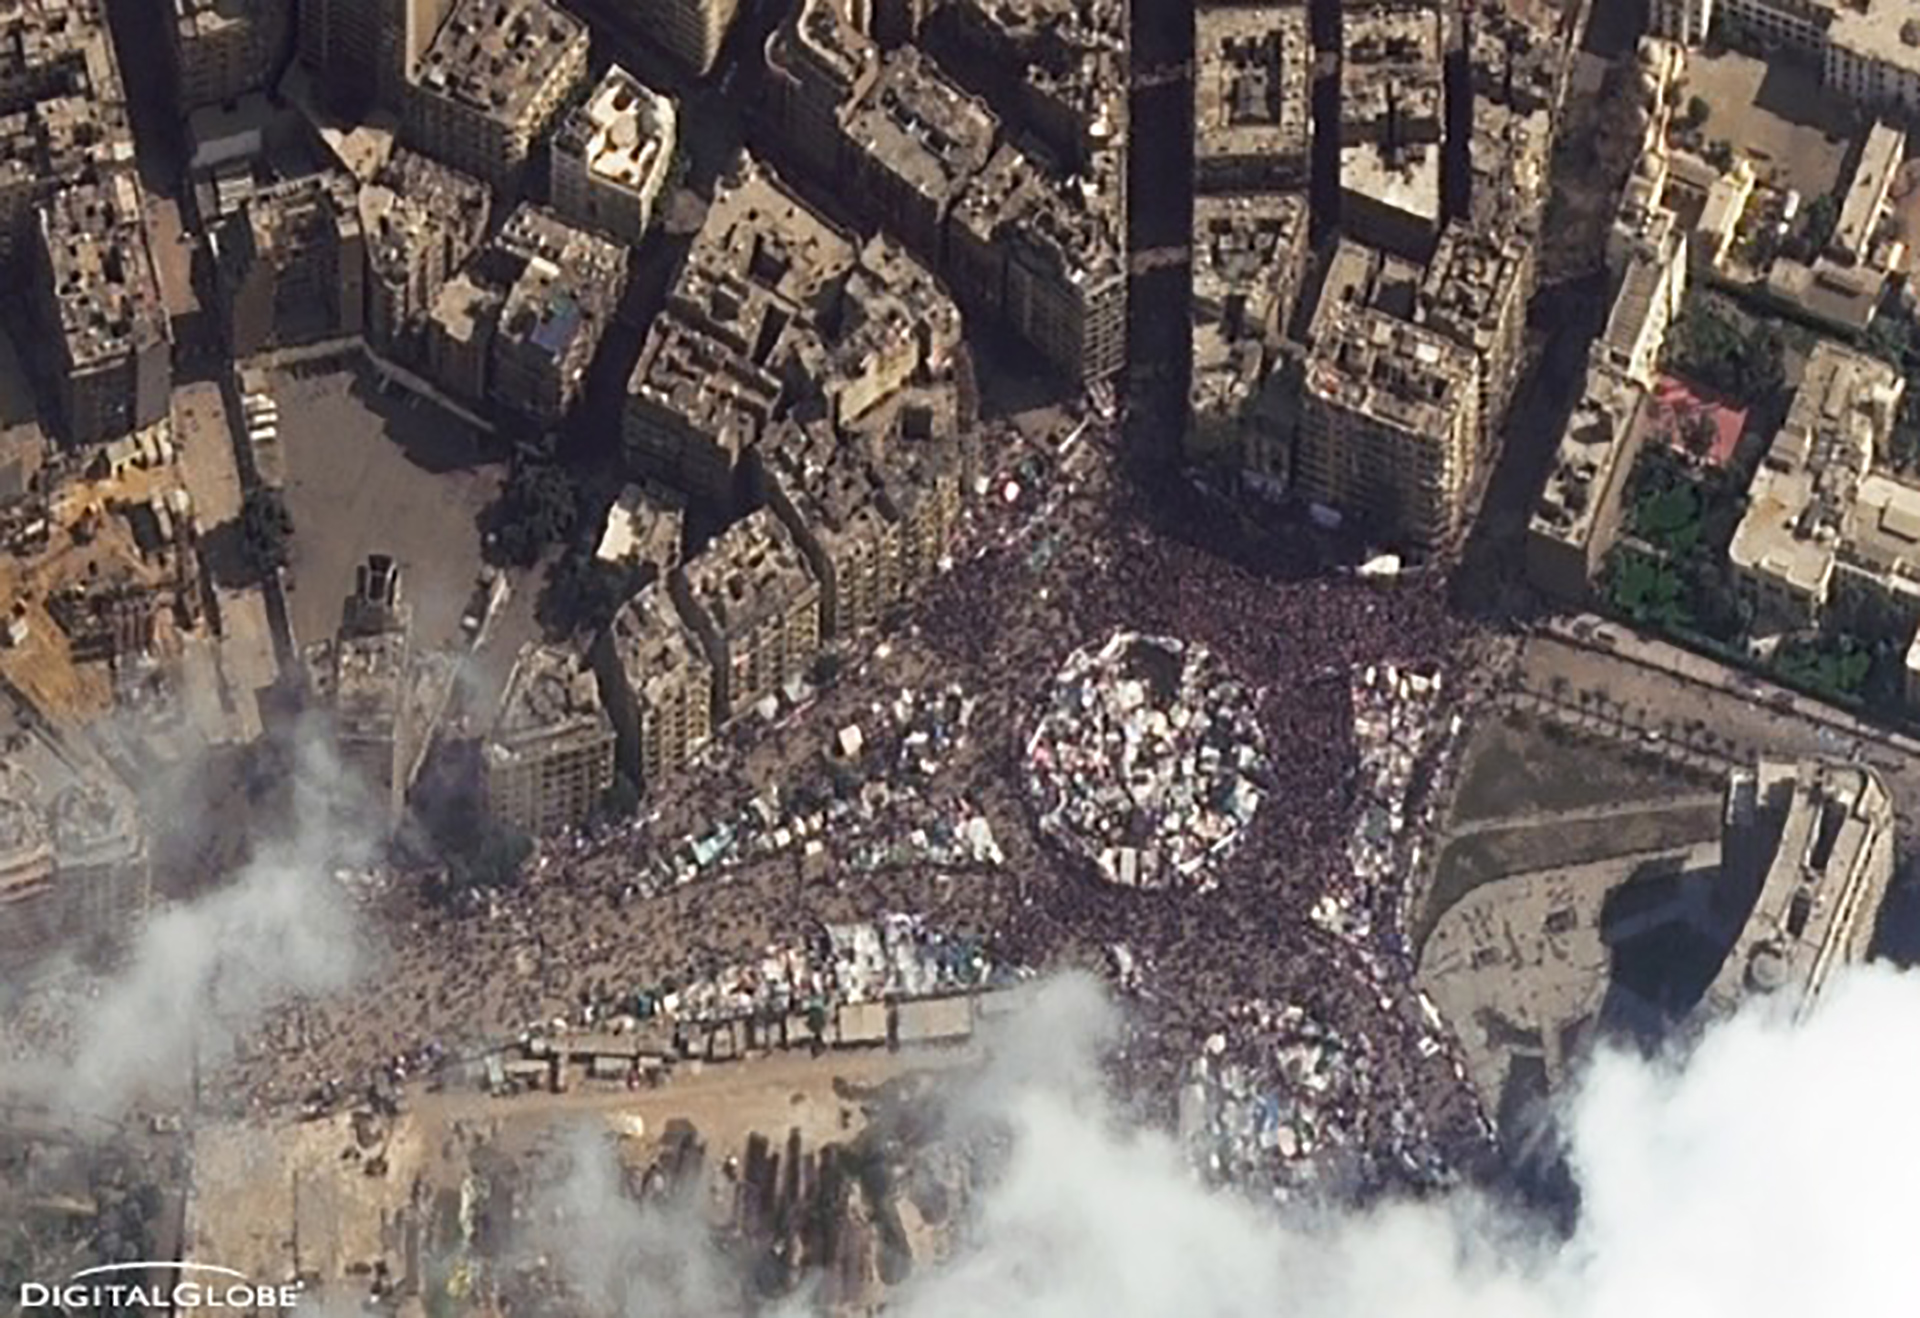 FIGURE 6. This image shows Cairo's Tahrir Square on February 11, 2011, the day Hosni Mubarak gave up the Egyptian presidency, when an estimated 300,000 protesters gathered in downtown Cairo, Egypt. Courtesy of DigitalGlobe.